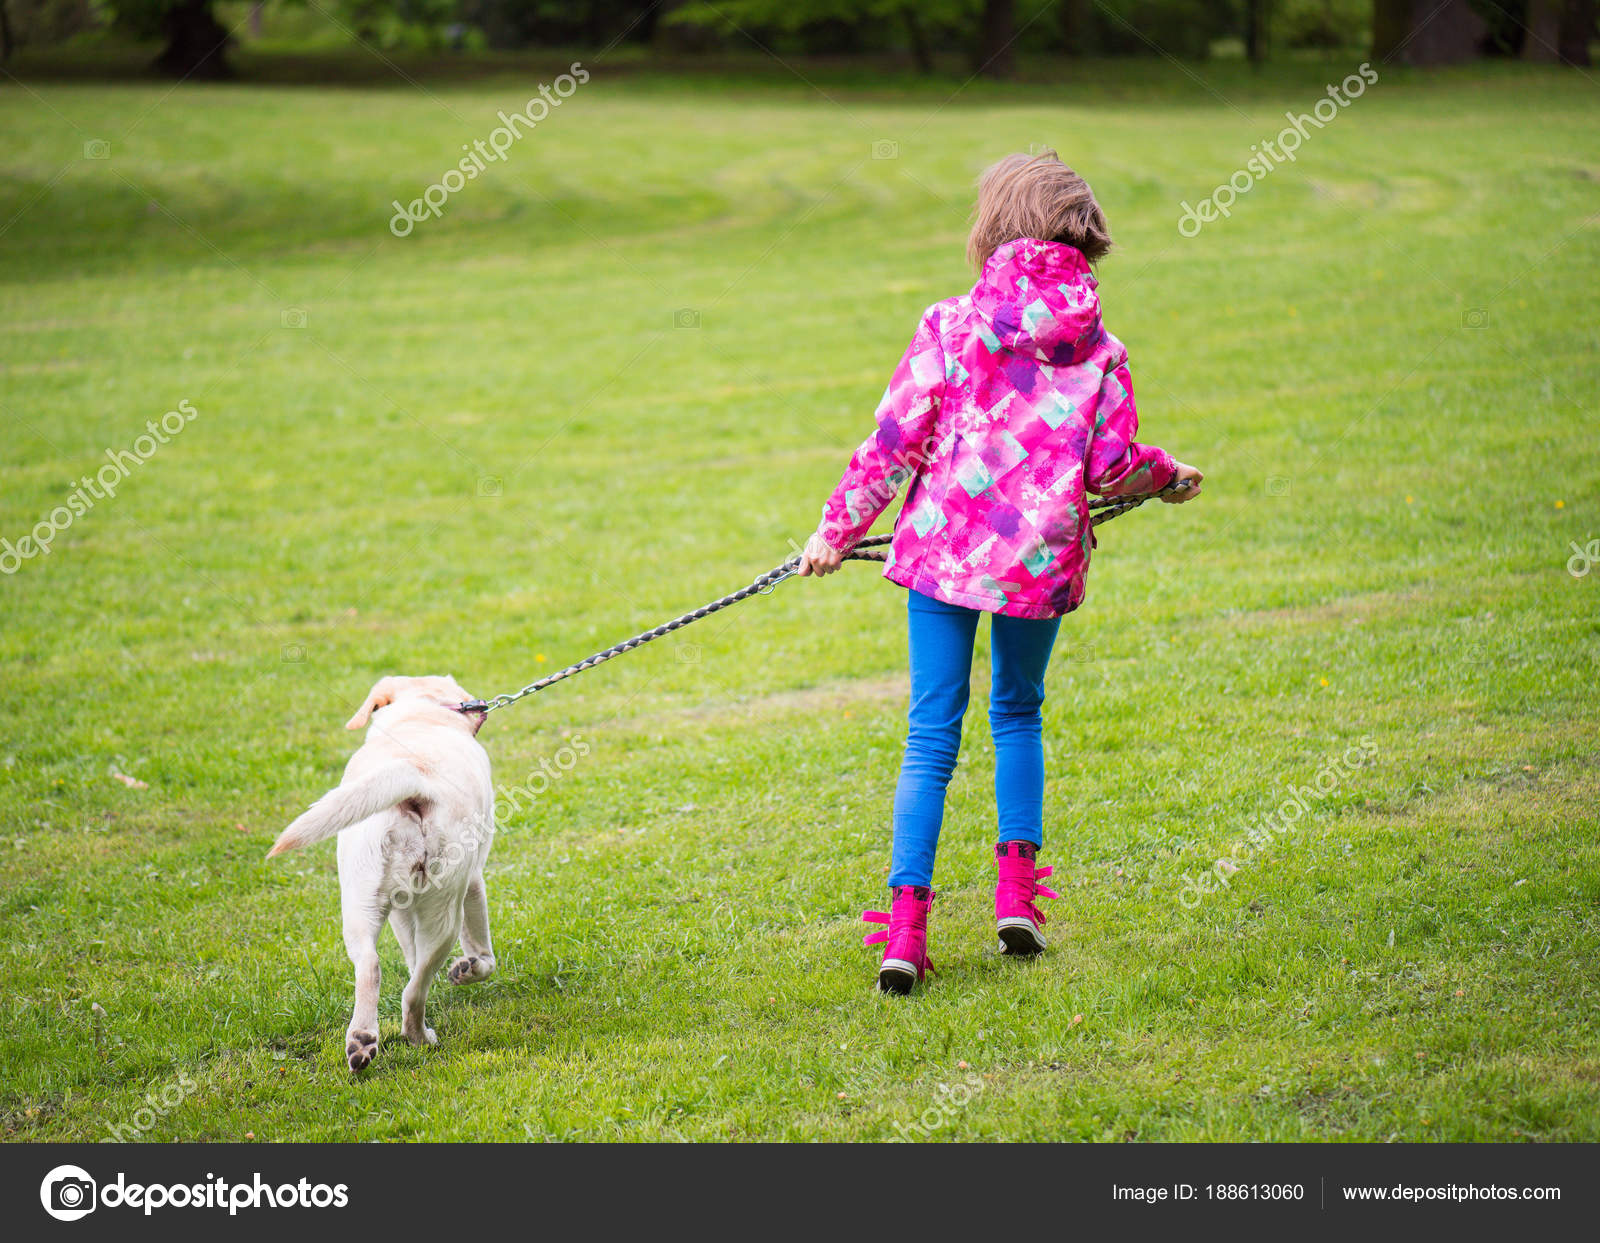 Girl with dog in park — Stock Photo © VaLiza #188613060